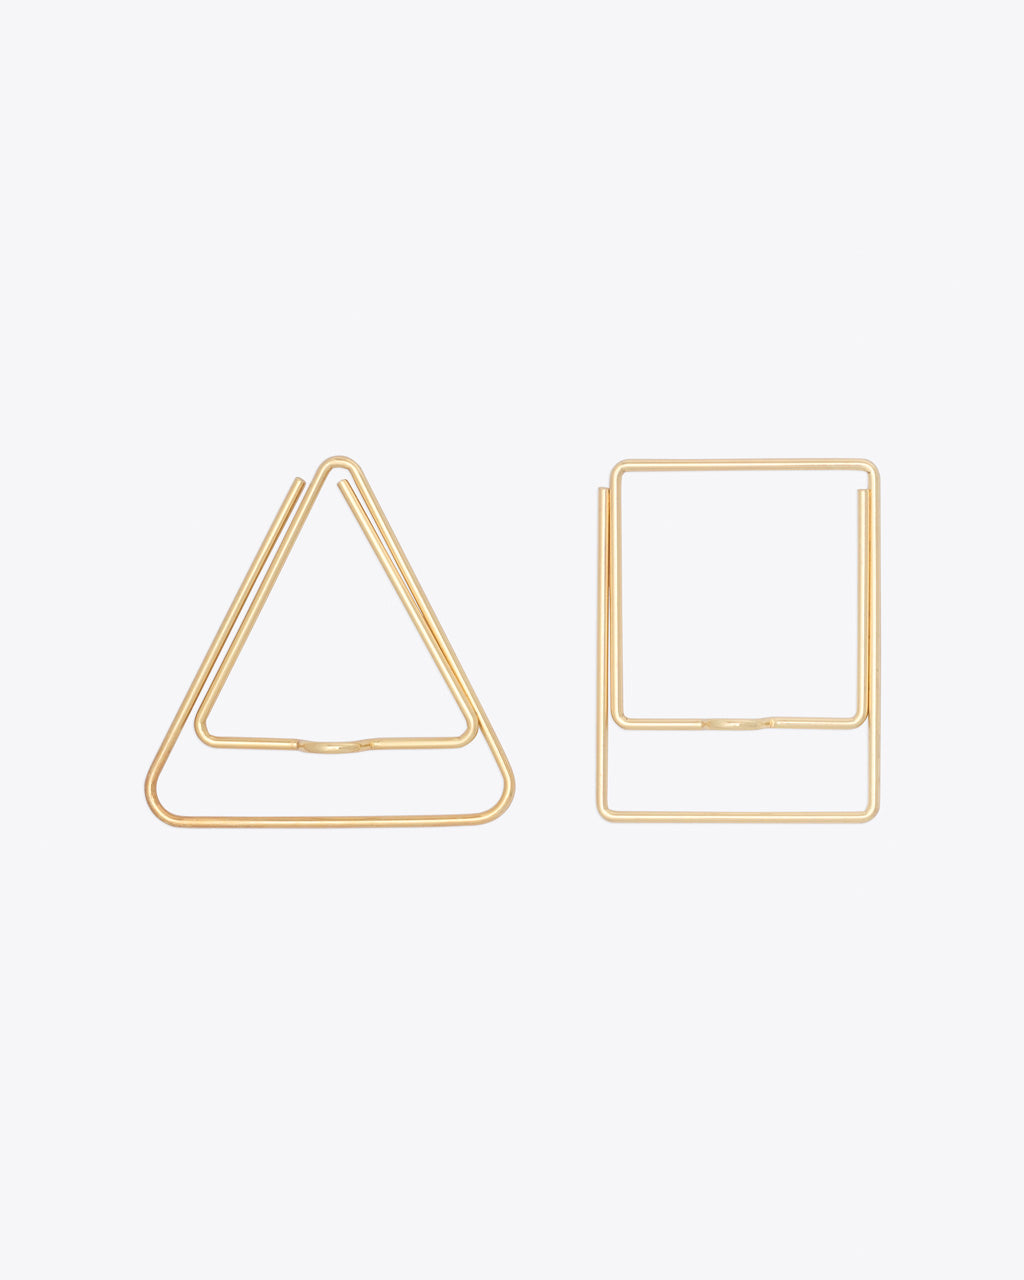 set of 2 geometric shaped gold pen clips